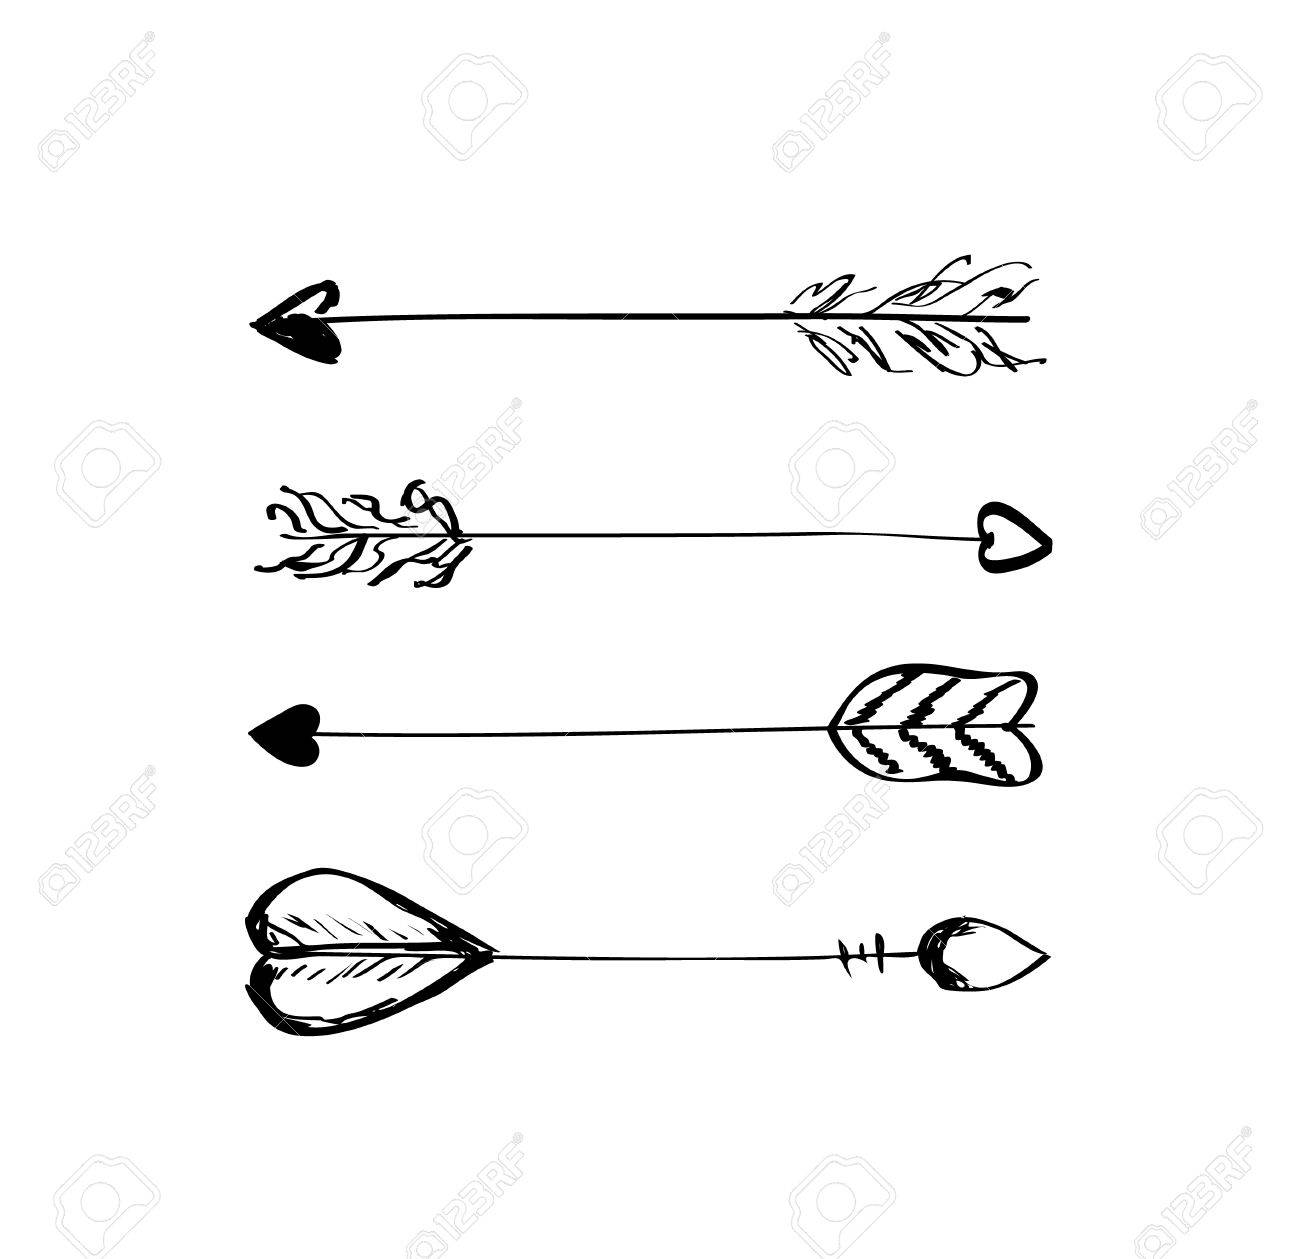 Hand Drawn Vector Arrows With Feathers Doodle Elements Royalty Free Cliparts Vectors And Stock Illustration Image 47067840